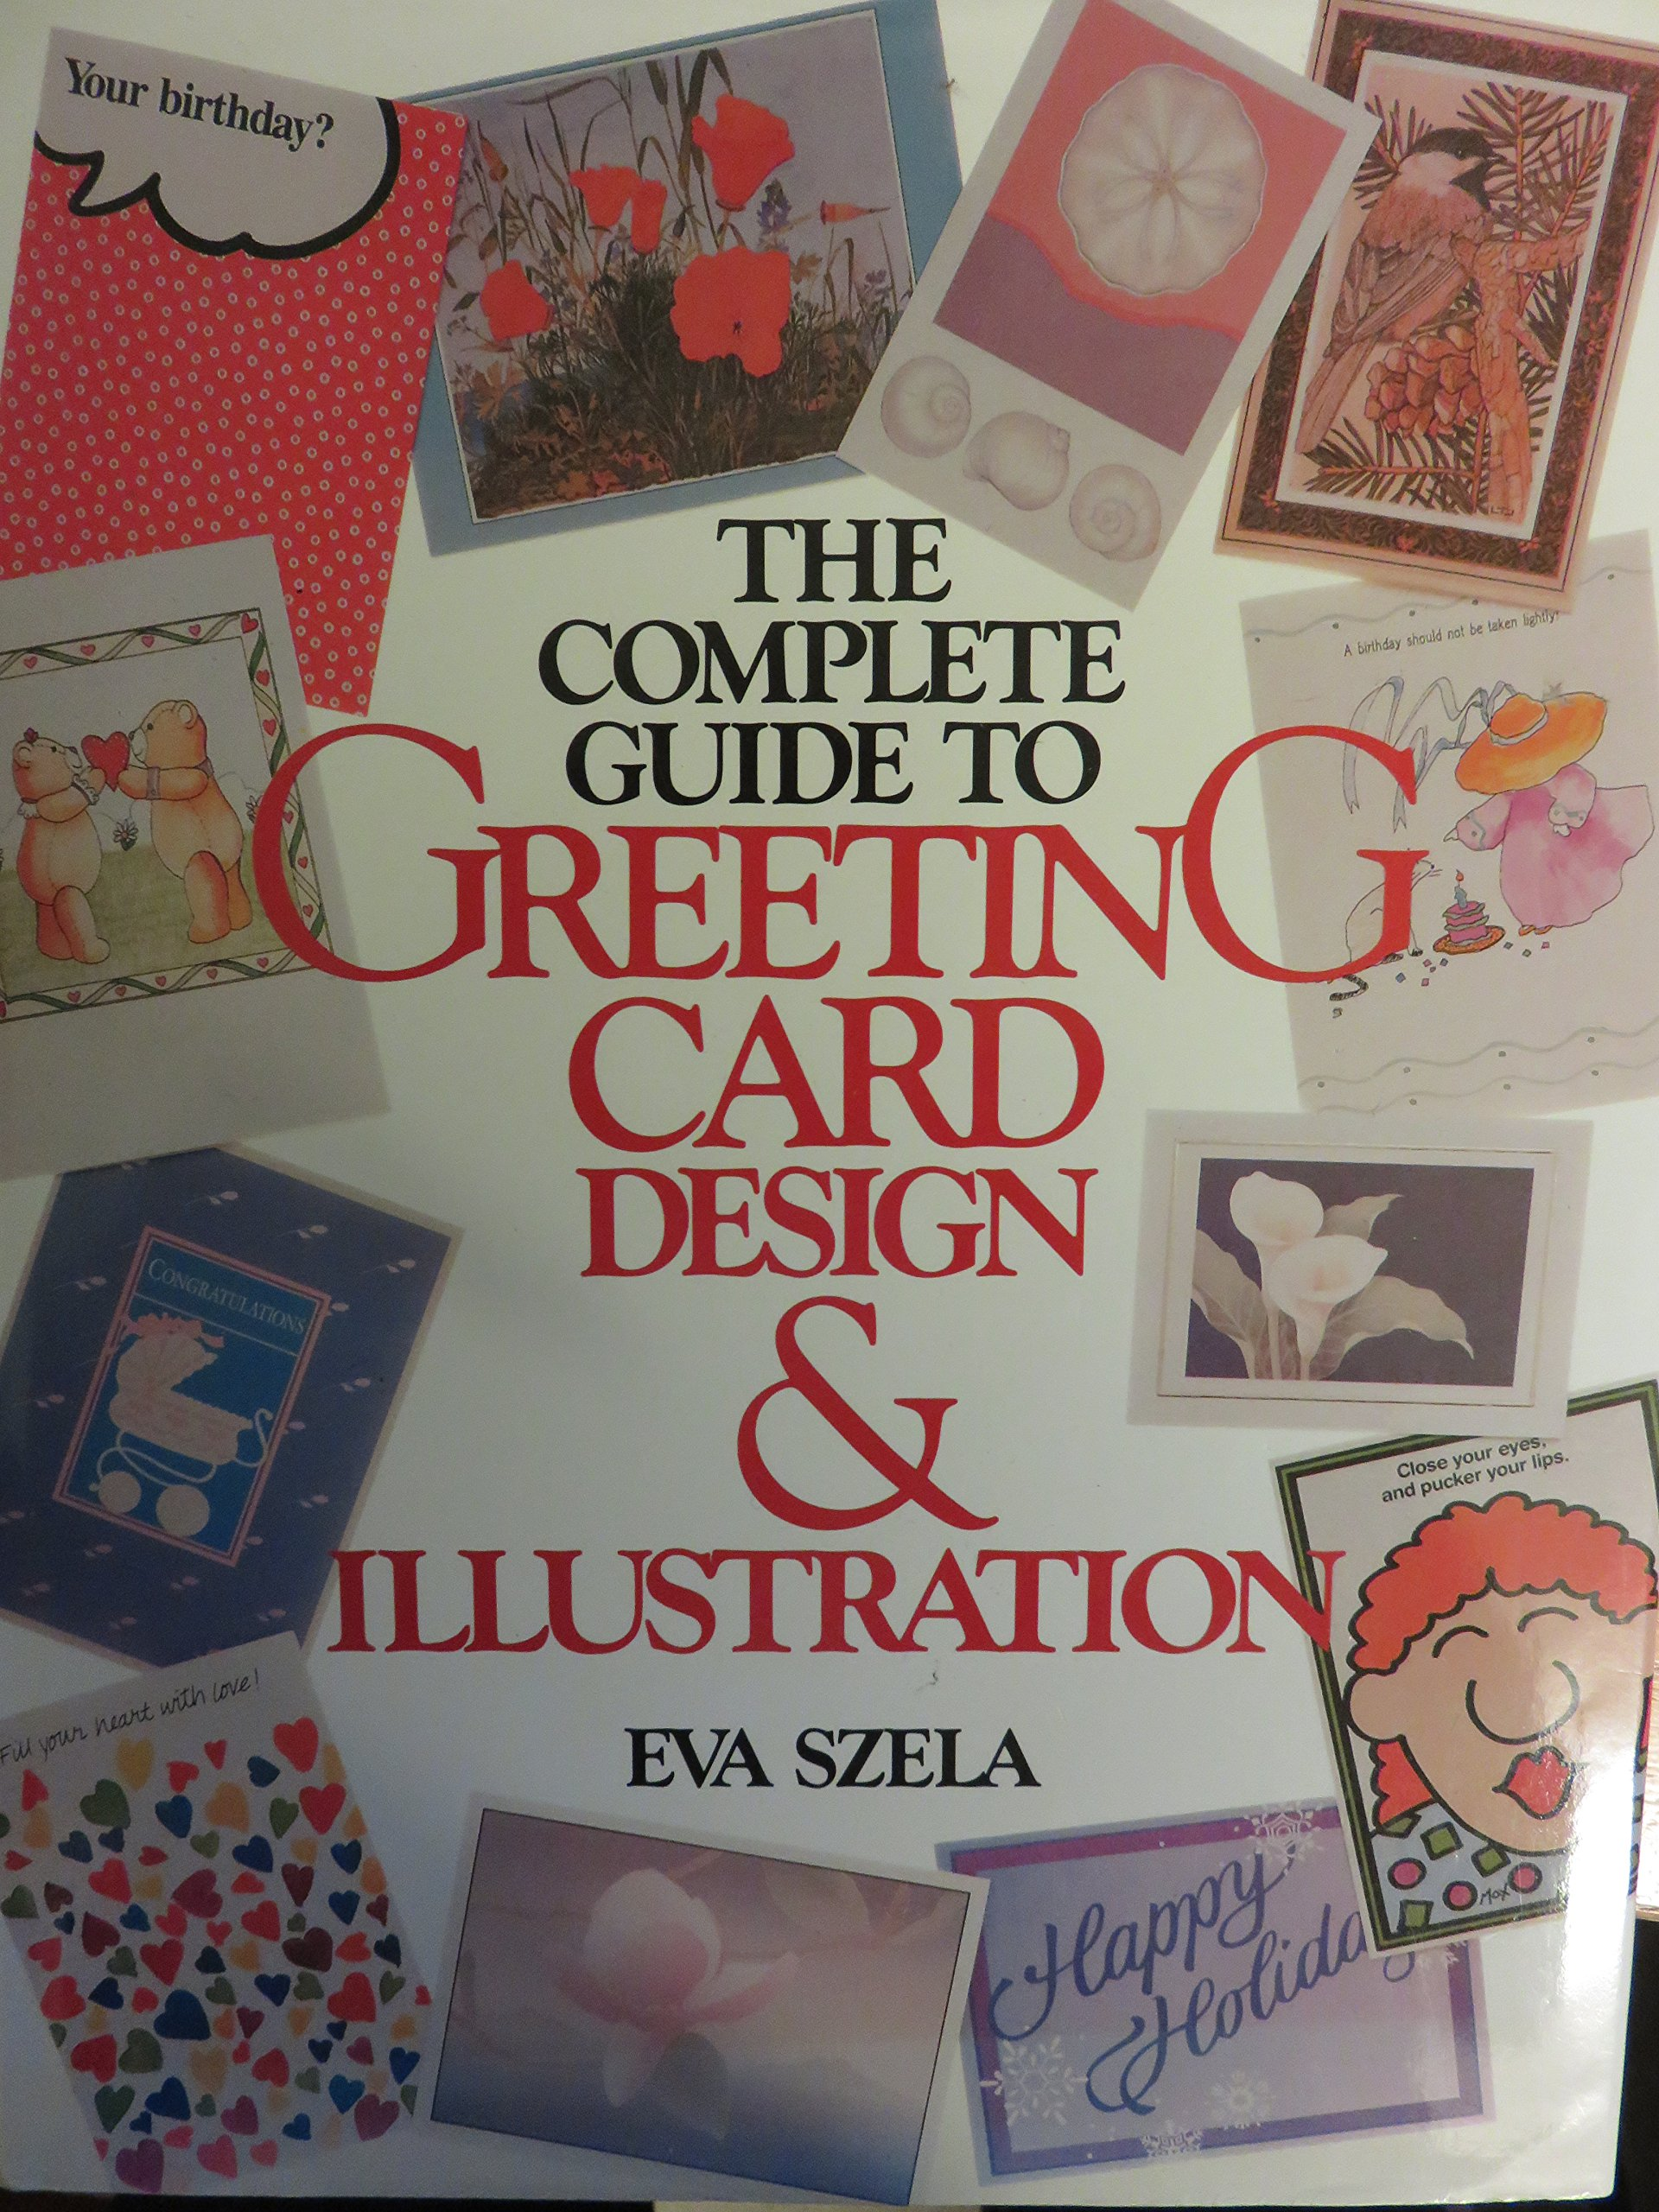 The Complete Guide To Greeting Card Design And Illustration Eva